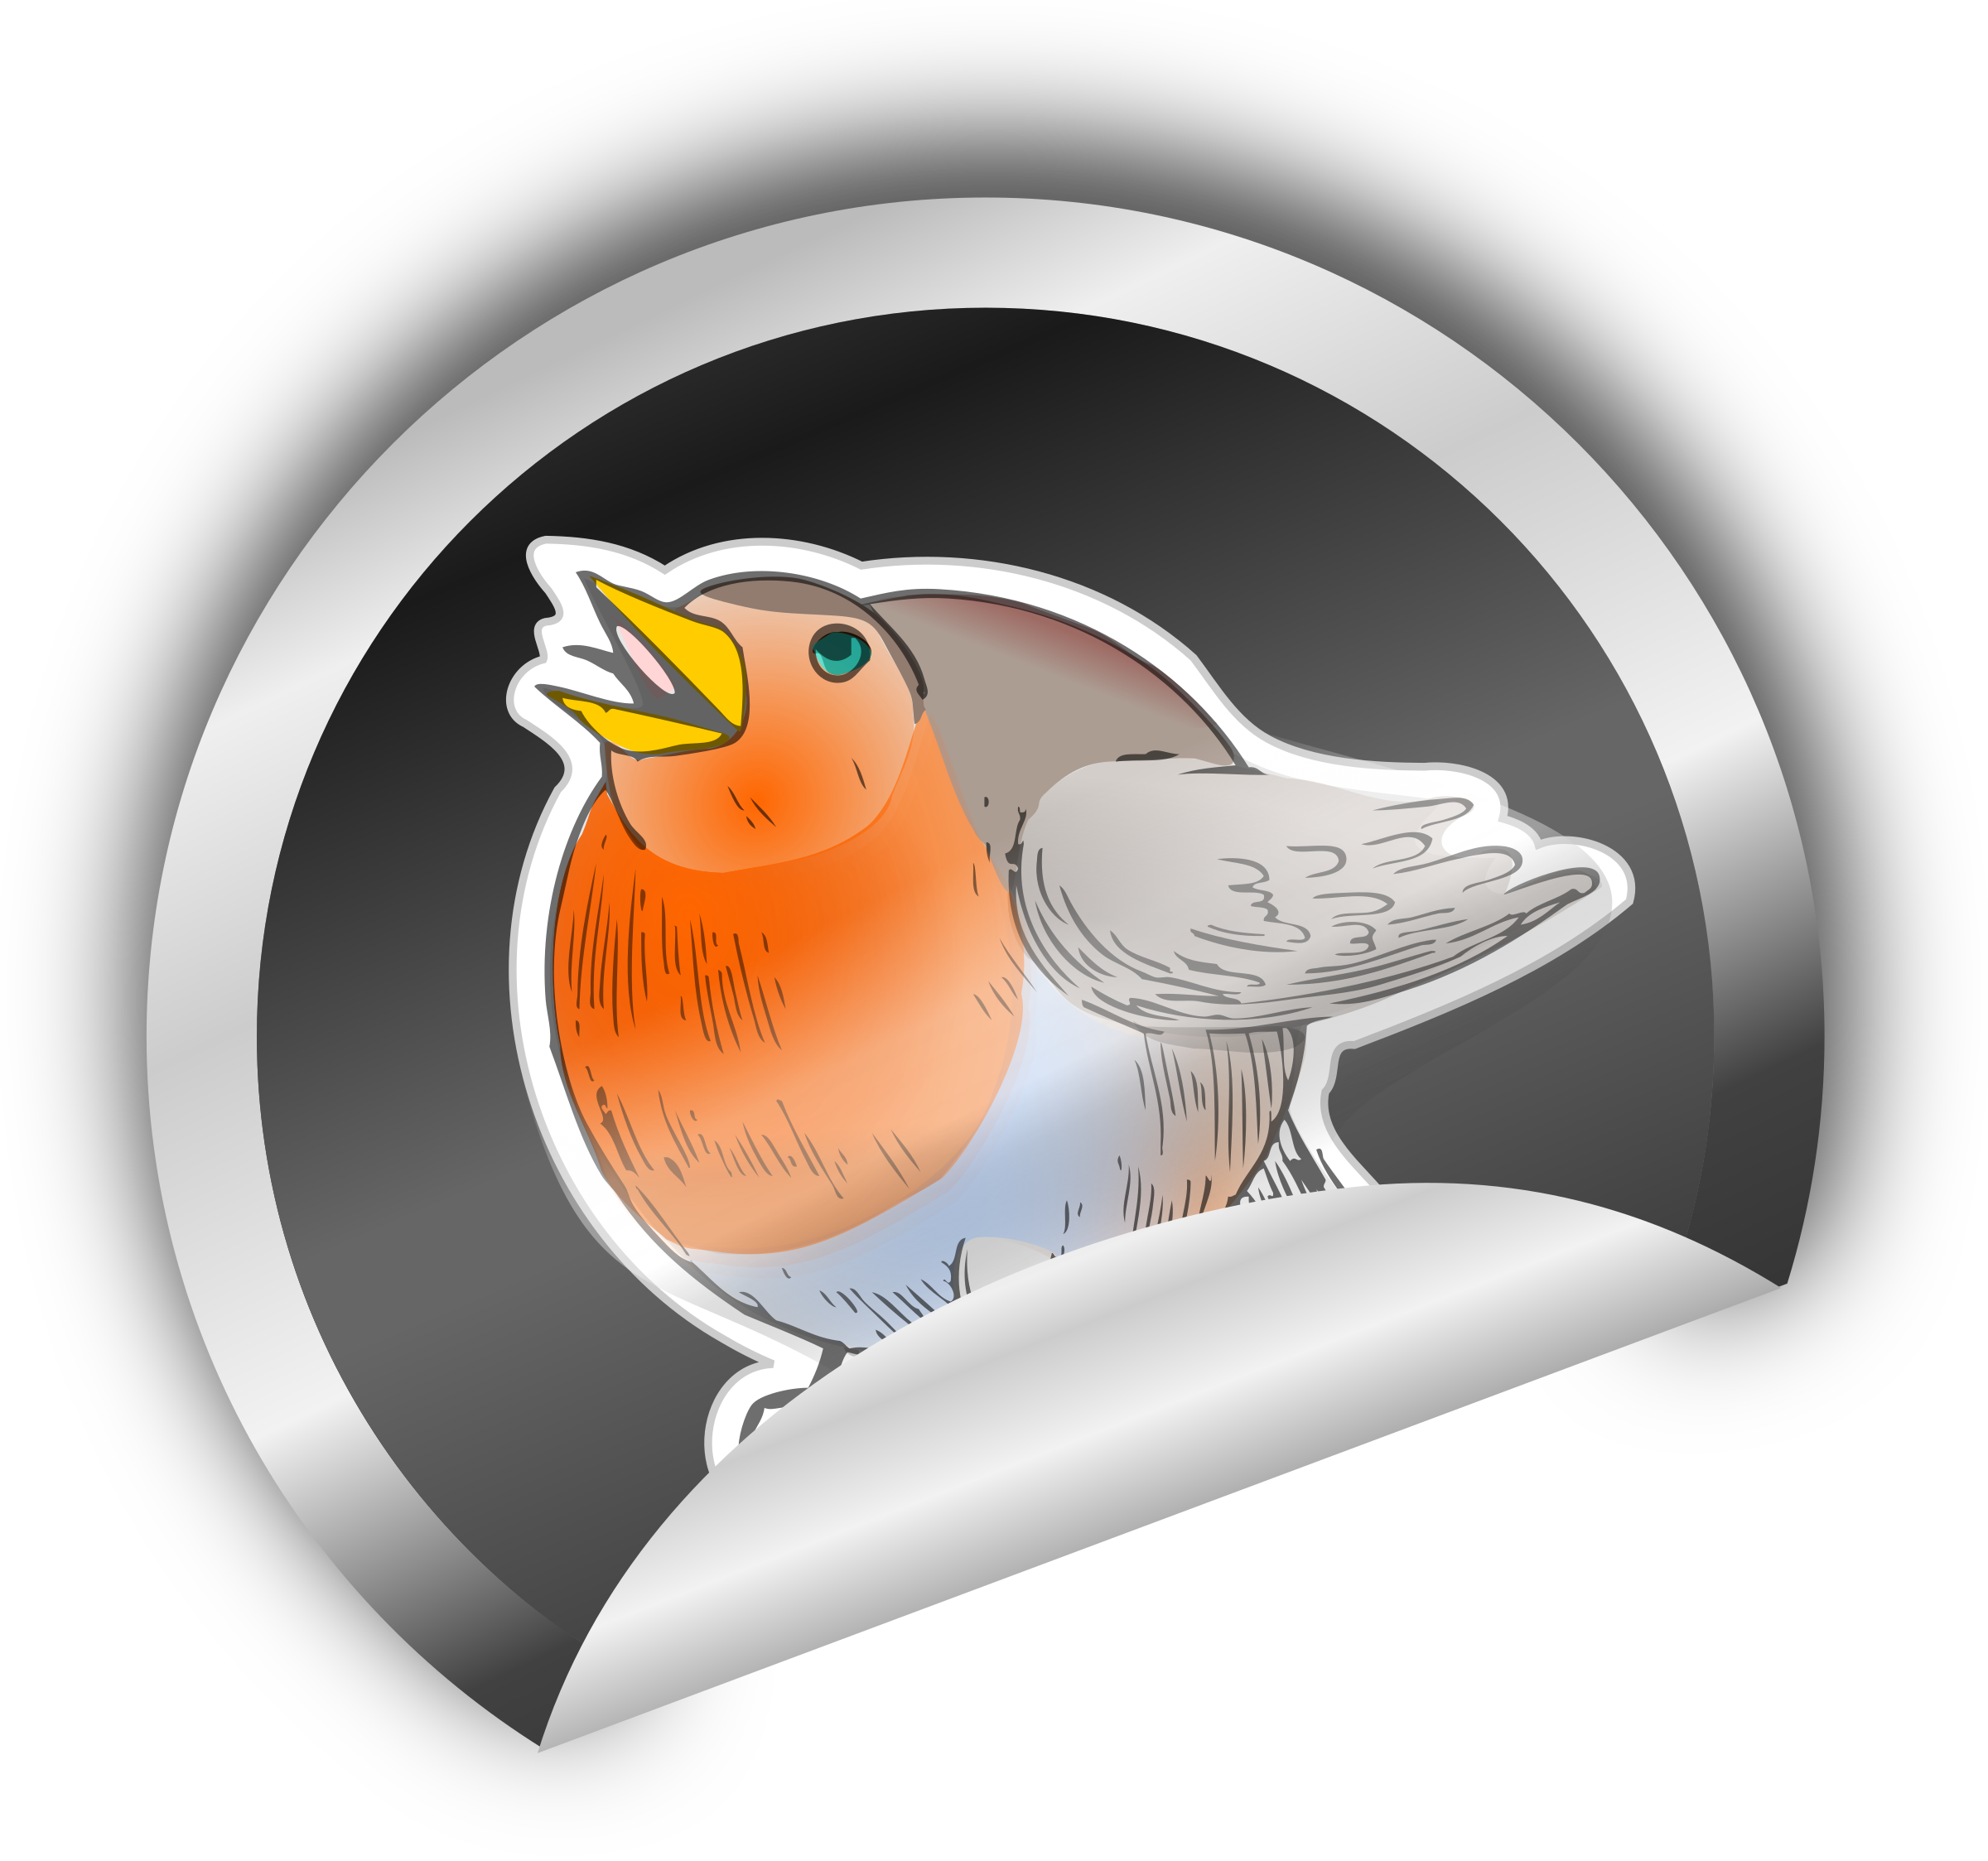 Sticker transparent round. Robin on icons png